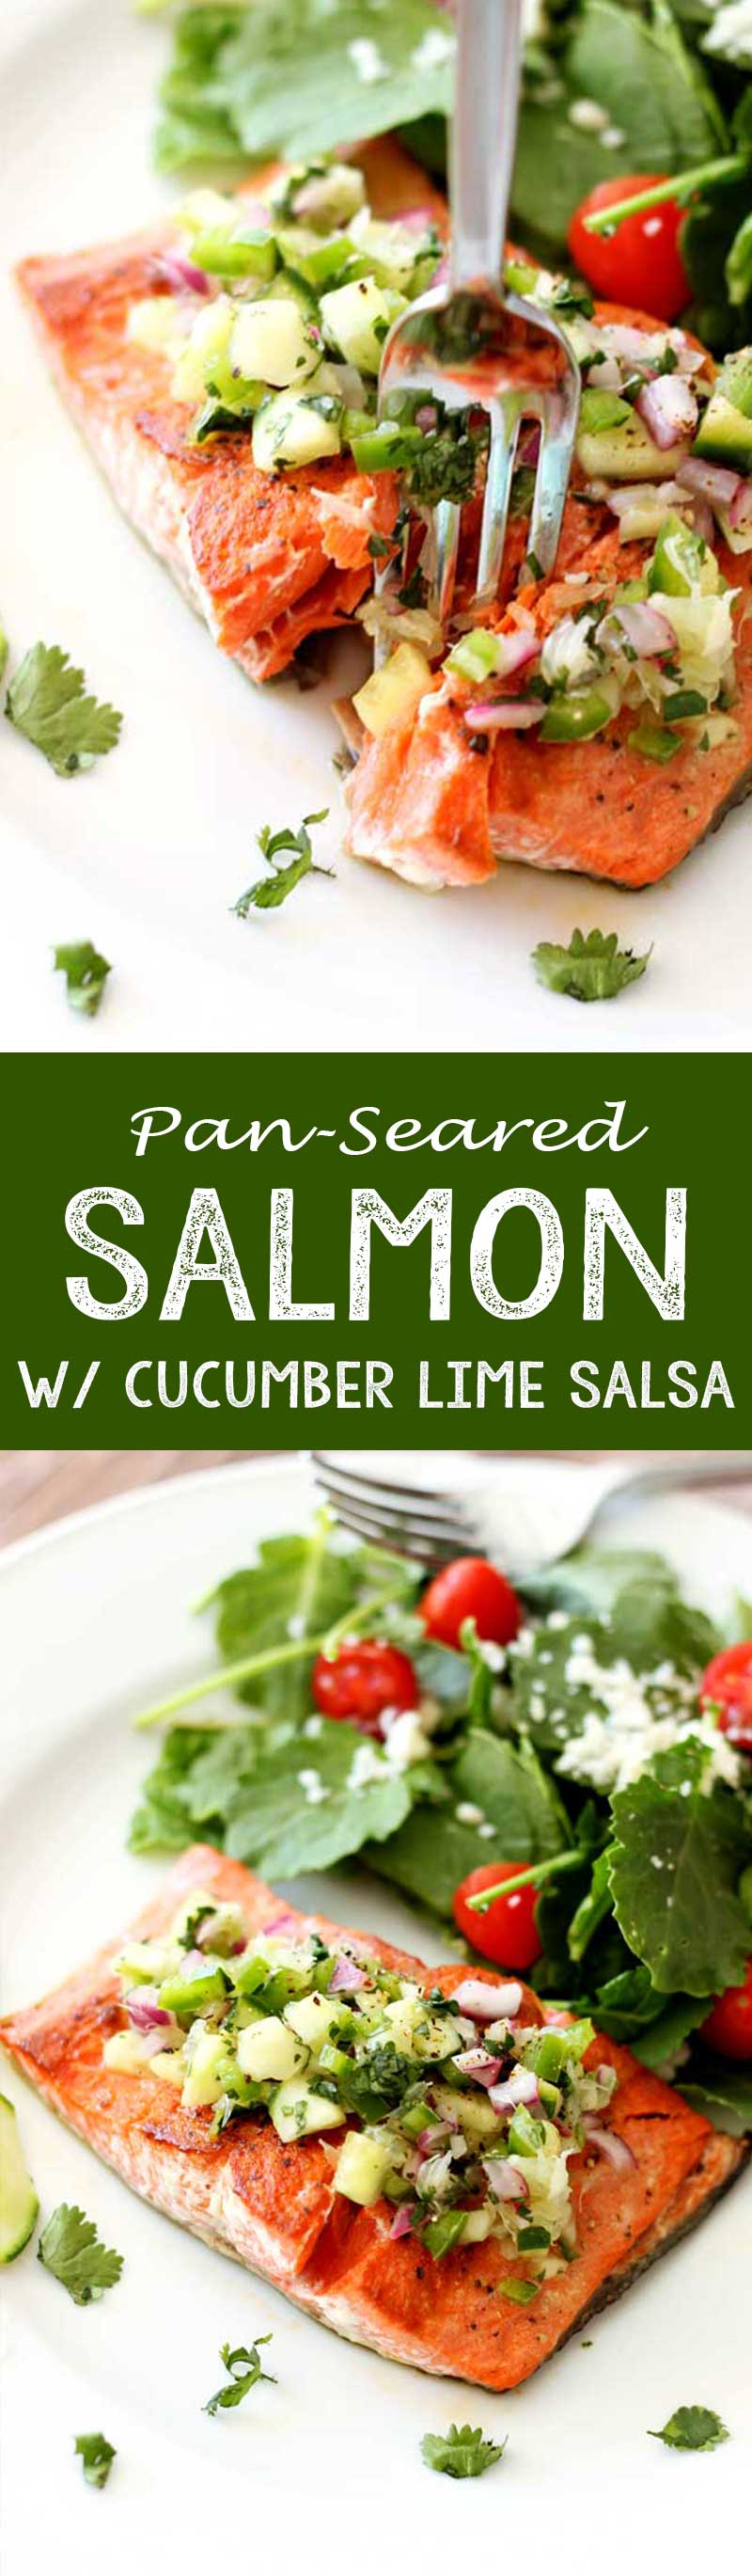 This was the easiest weeknight meal ever. Pan Seared Salmon with cucumber lime salmon